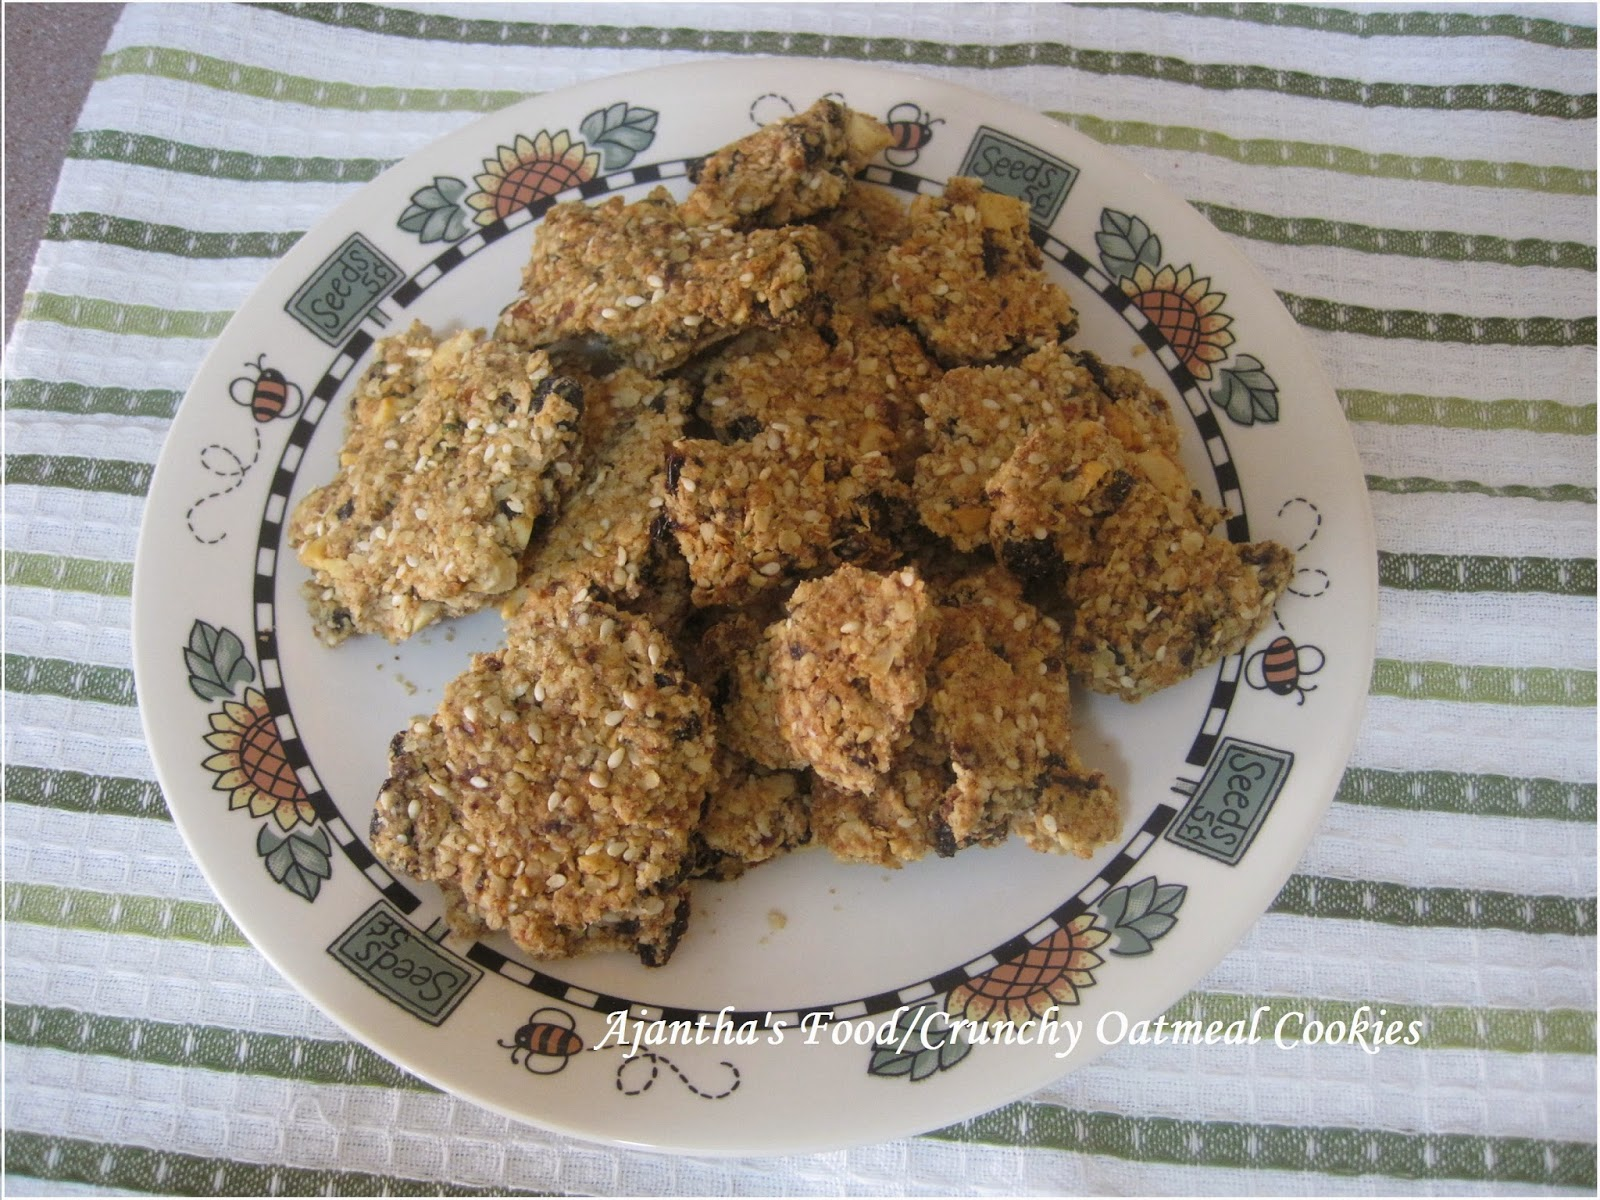 Ajantha's Food/Oatmeal Crunchy Cookies